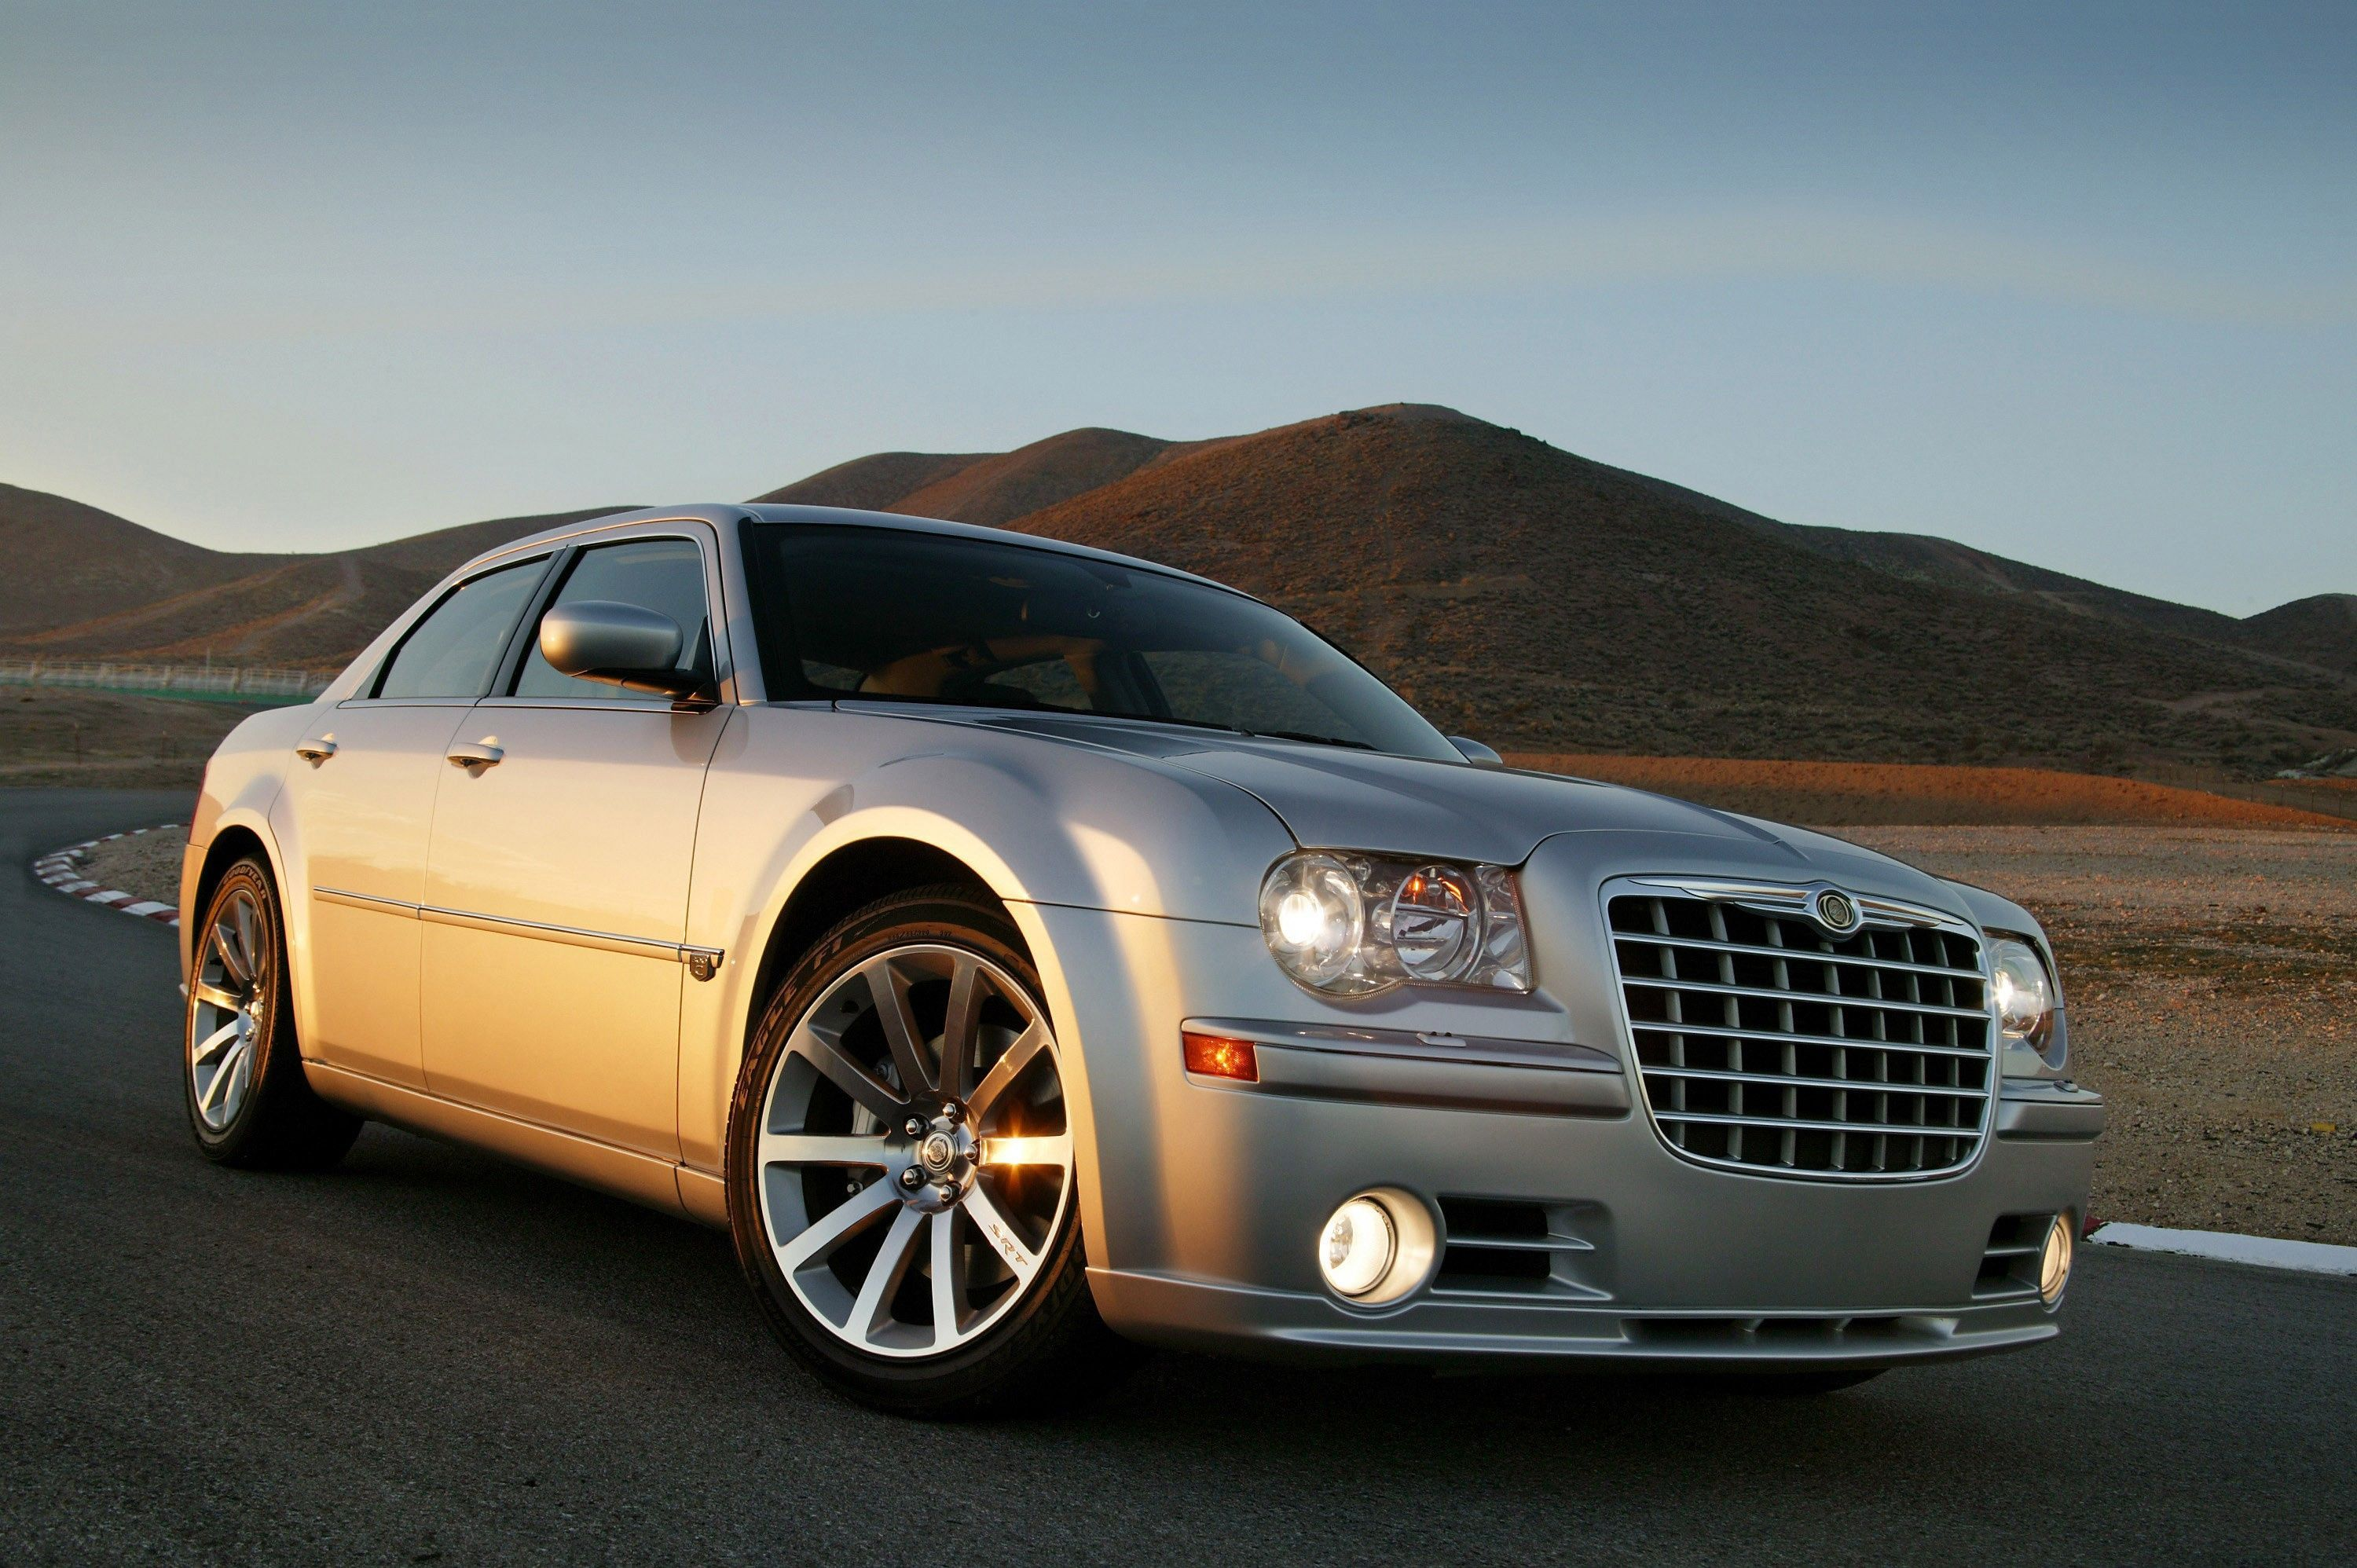 2020 Chrysler 300 Srt8 New Model And In 2020 Chrysler 300